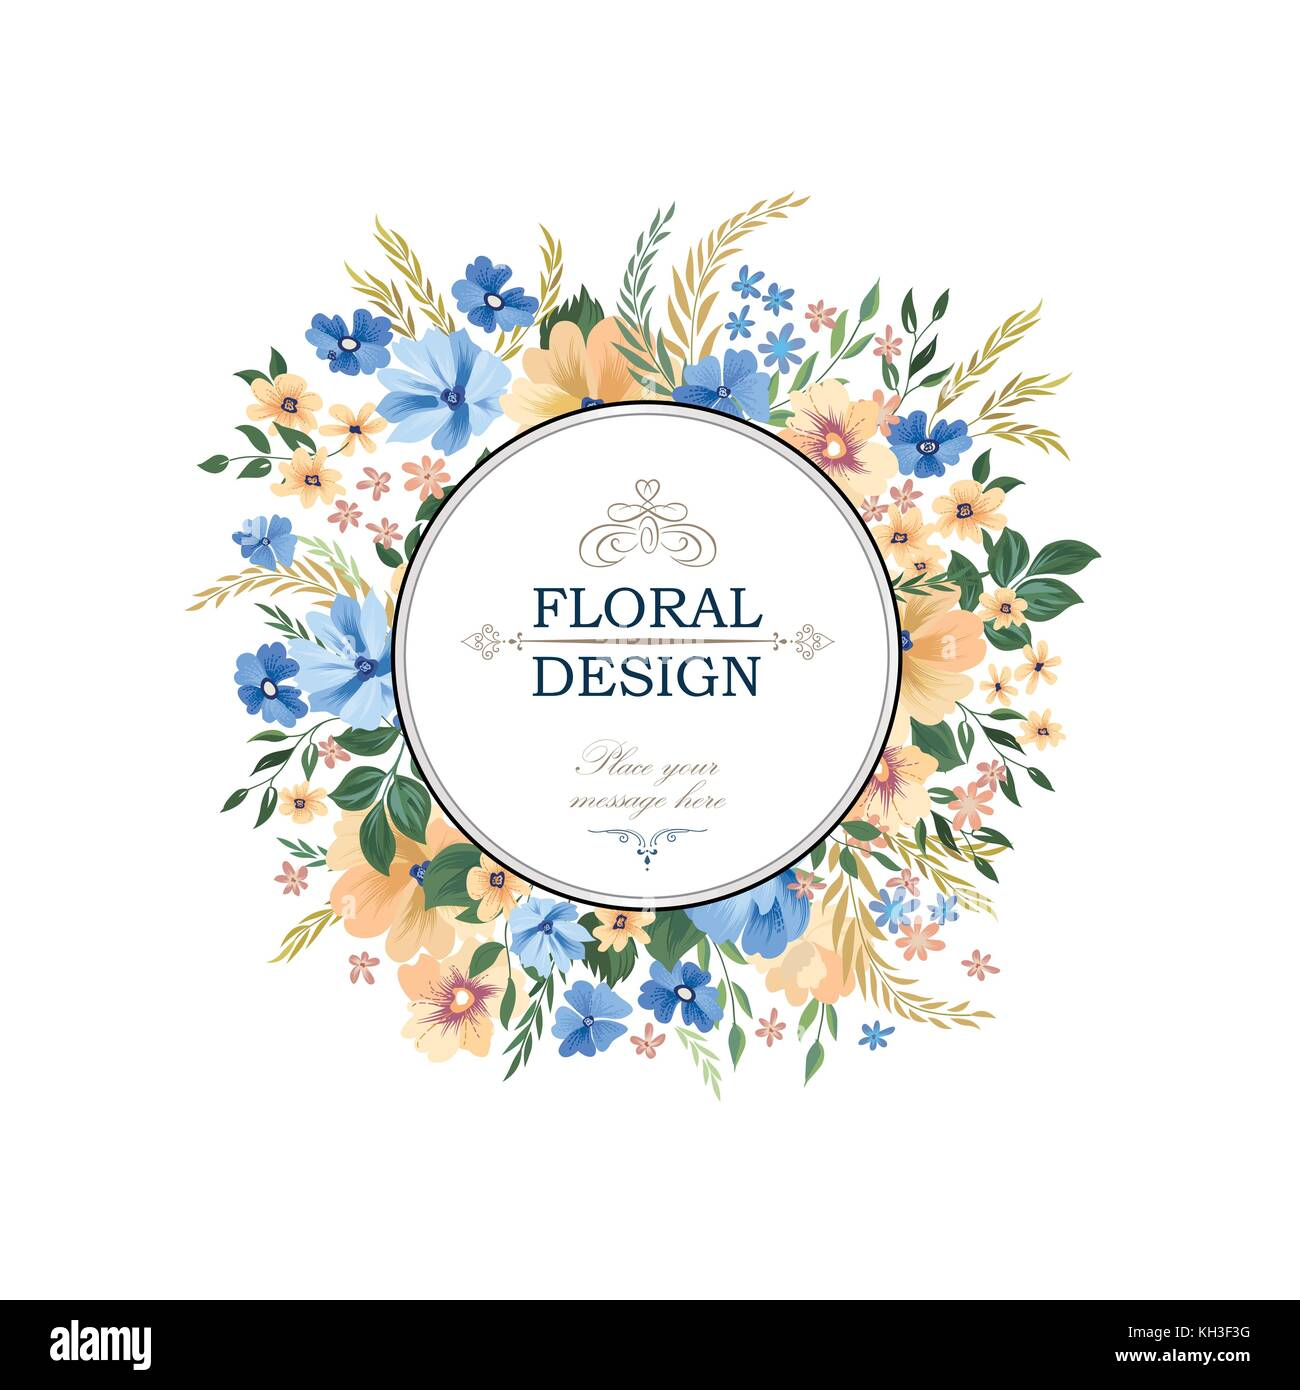 Floral frame pattern flower circle border background greeting card flower circle border background greeting card design with flowers m4hsunfo